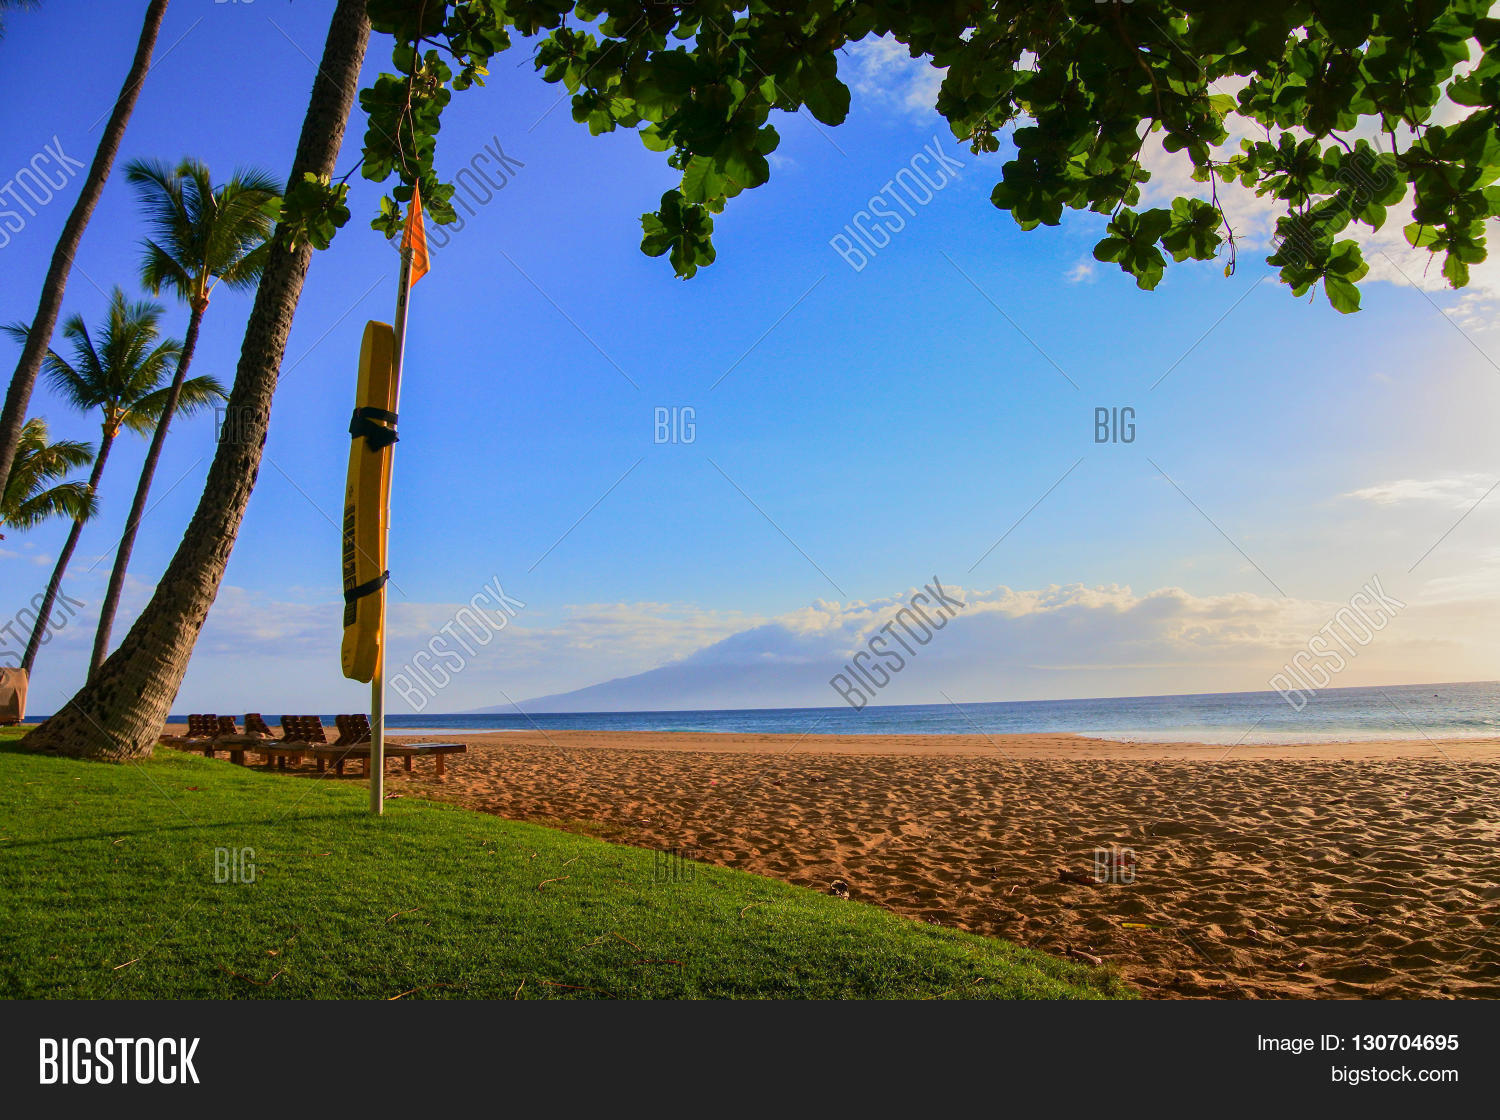 d1f491ab5e90 Luxurious Lahaina beach coastline found in Maui showcasing lifeguard  floatation device.